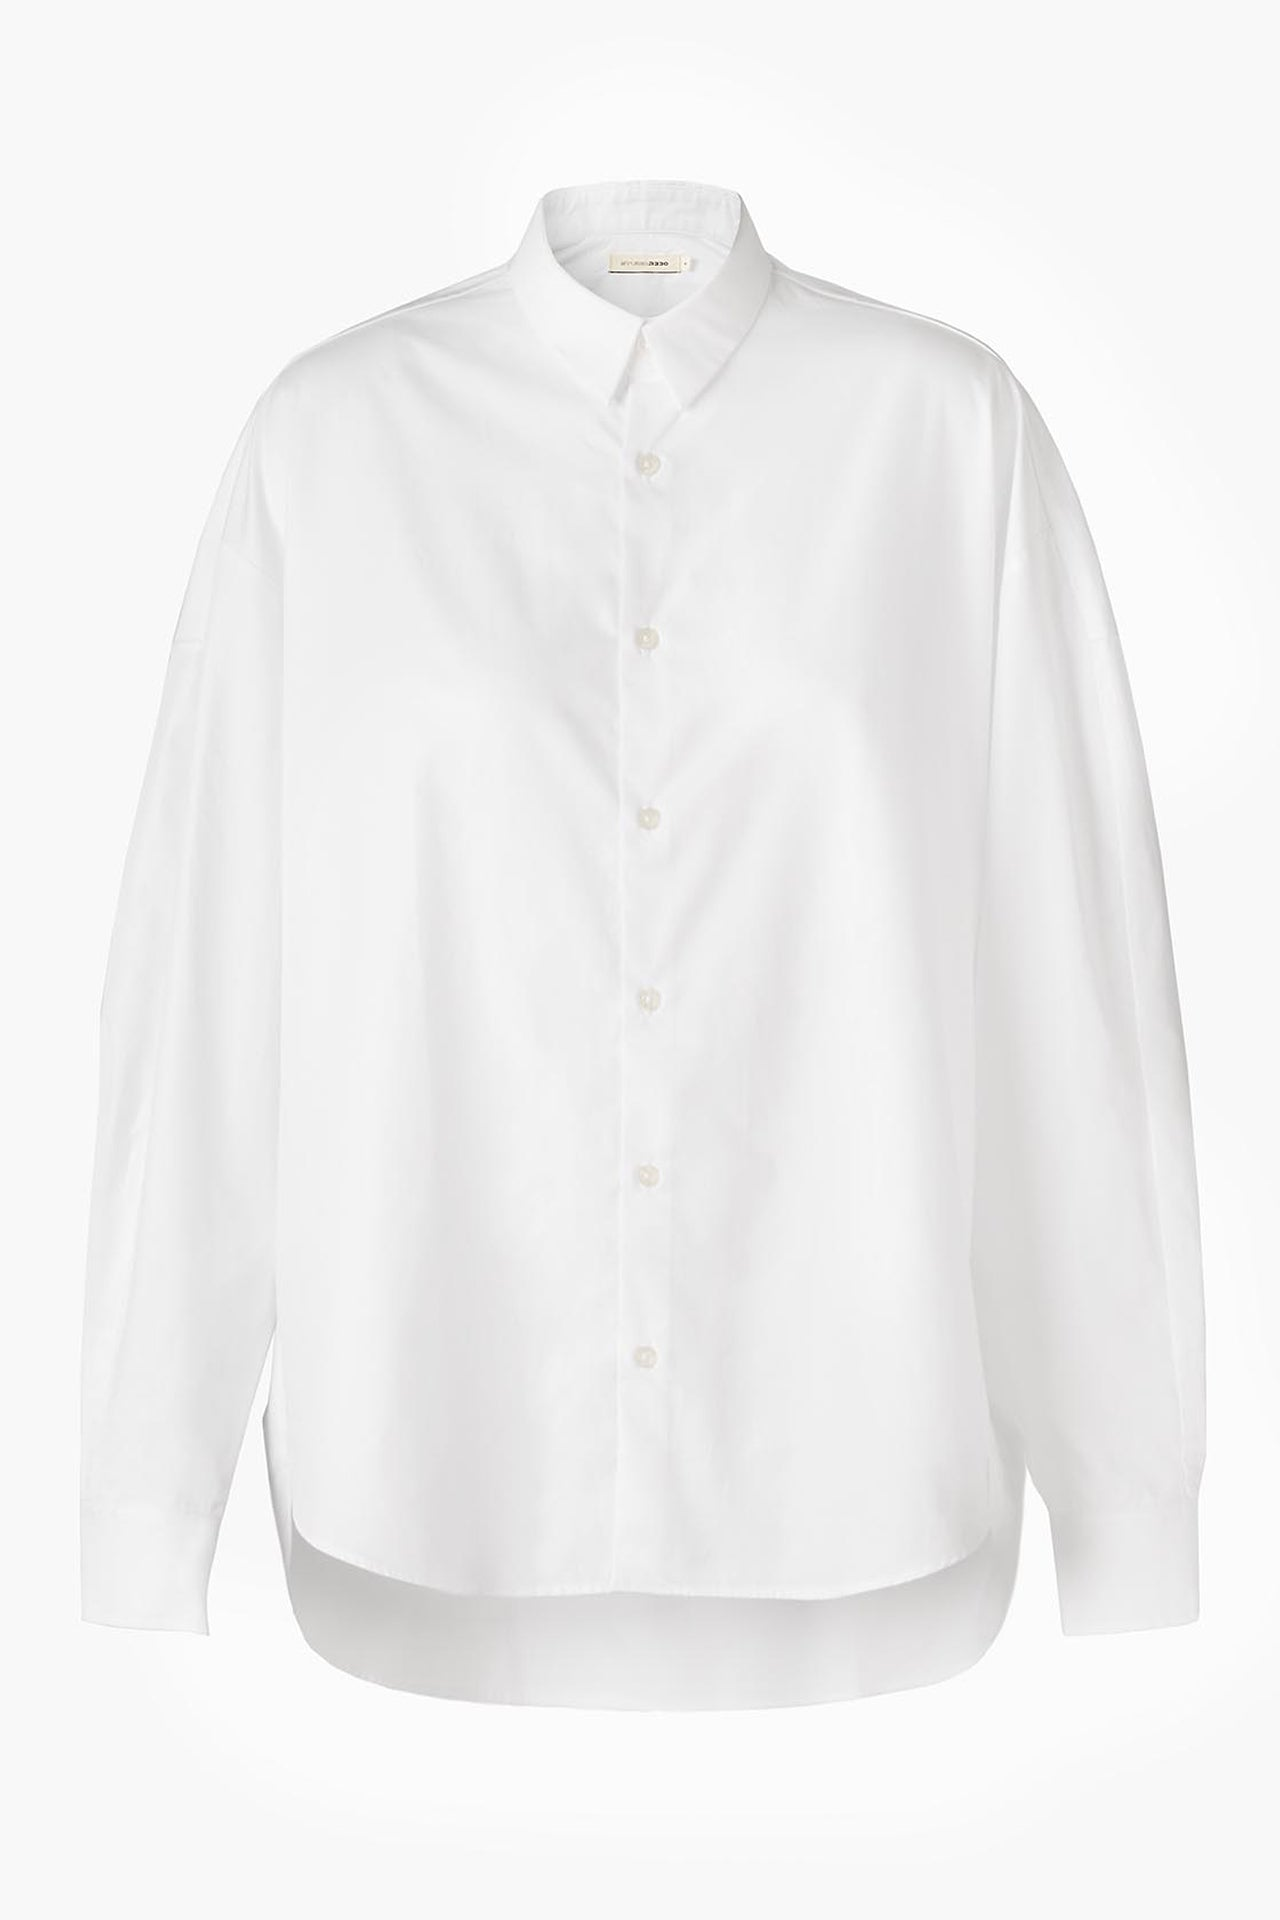 White Cotton Shirt - Boyfriend Fit